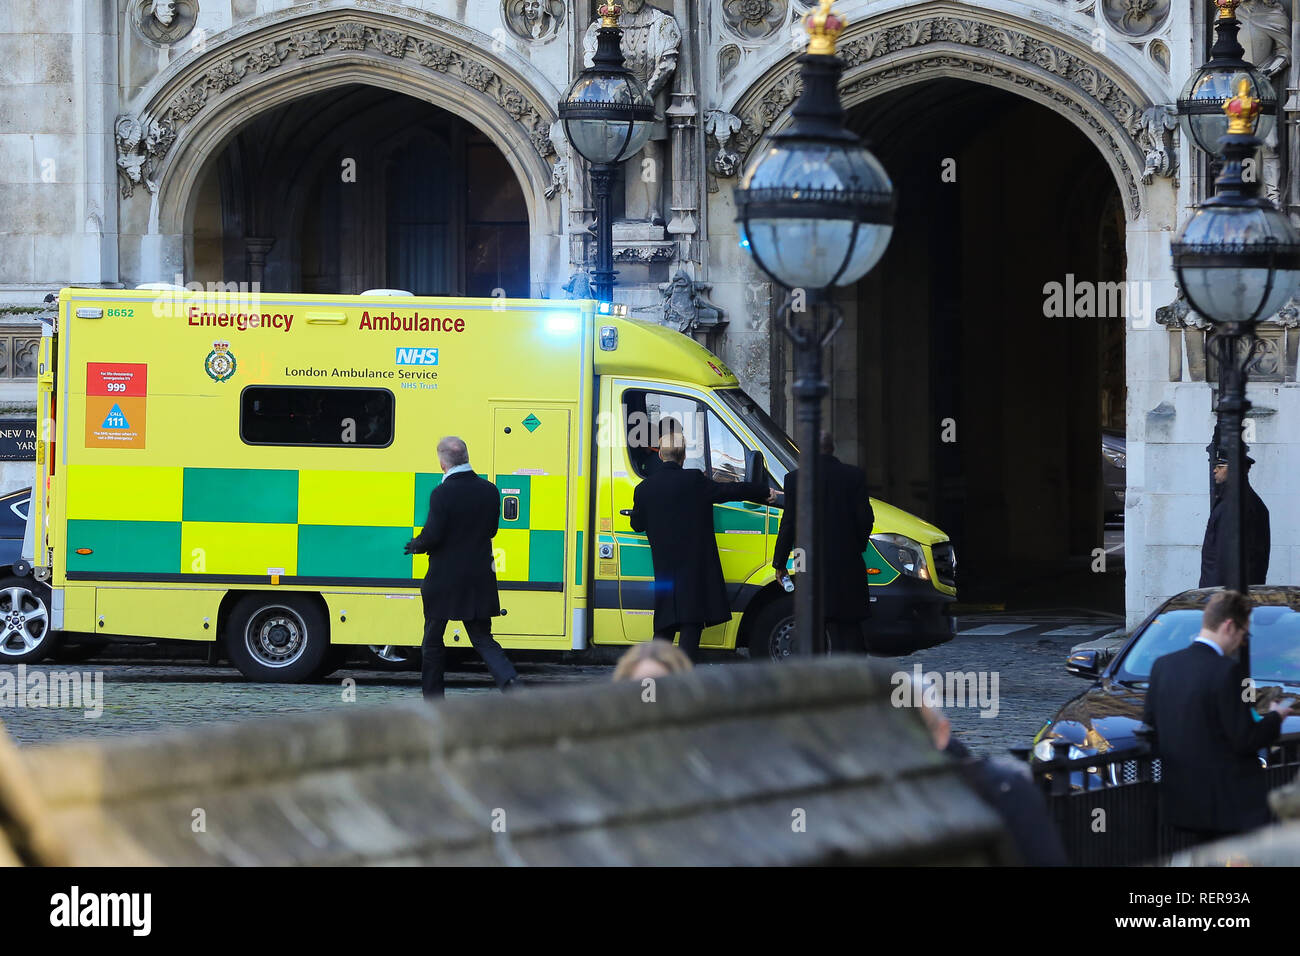 London, UK. 22nd Jan, 2019. An ambulance seen on grounds of the Palace of Westminster in London. Credit: Dinendra Haria/SOPA Images/ZUMA Wire/Alamy Live News Stock Photo